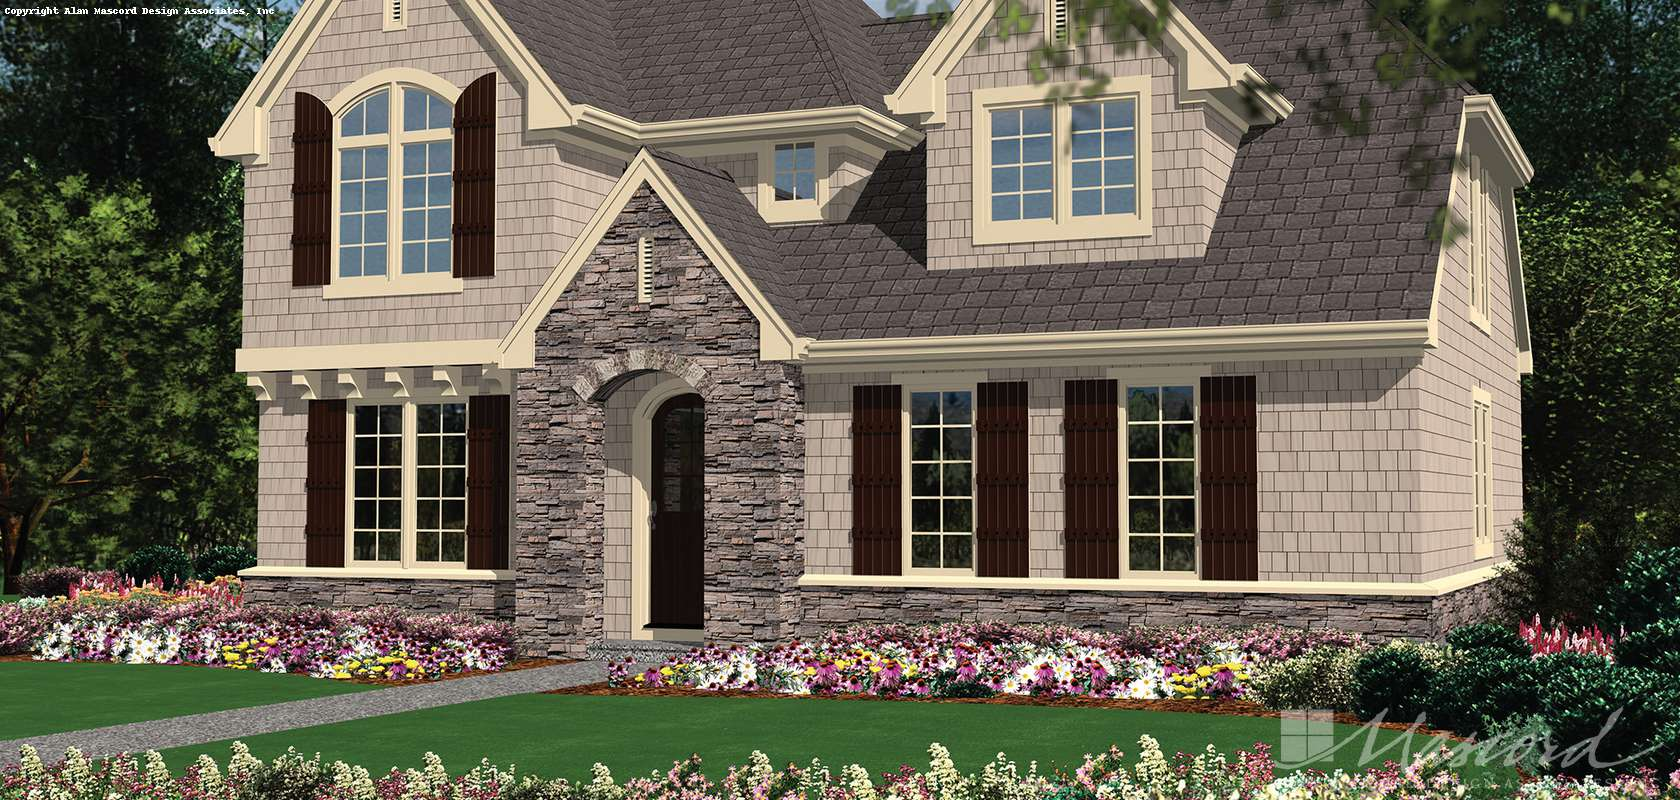 Mascord House Plan 22176A: The Jacksonville